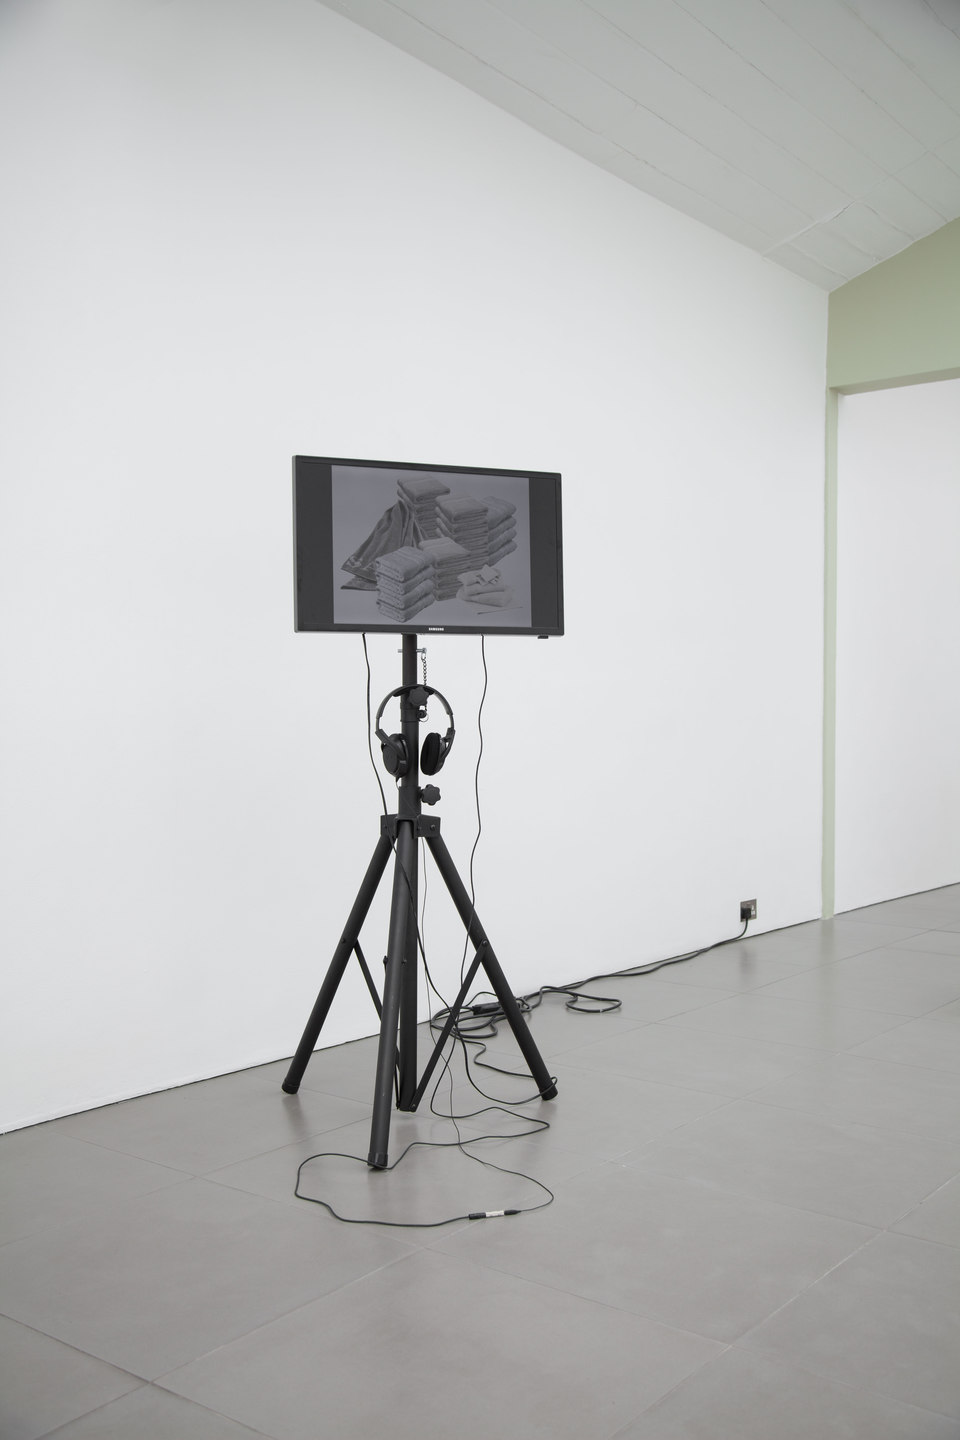 Rachel Reupke, Containing Matters Of No Very Peaceable Colour, 2009, video still, HD video, duration 5:18 mins, Cell Project Space